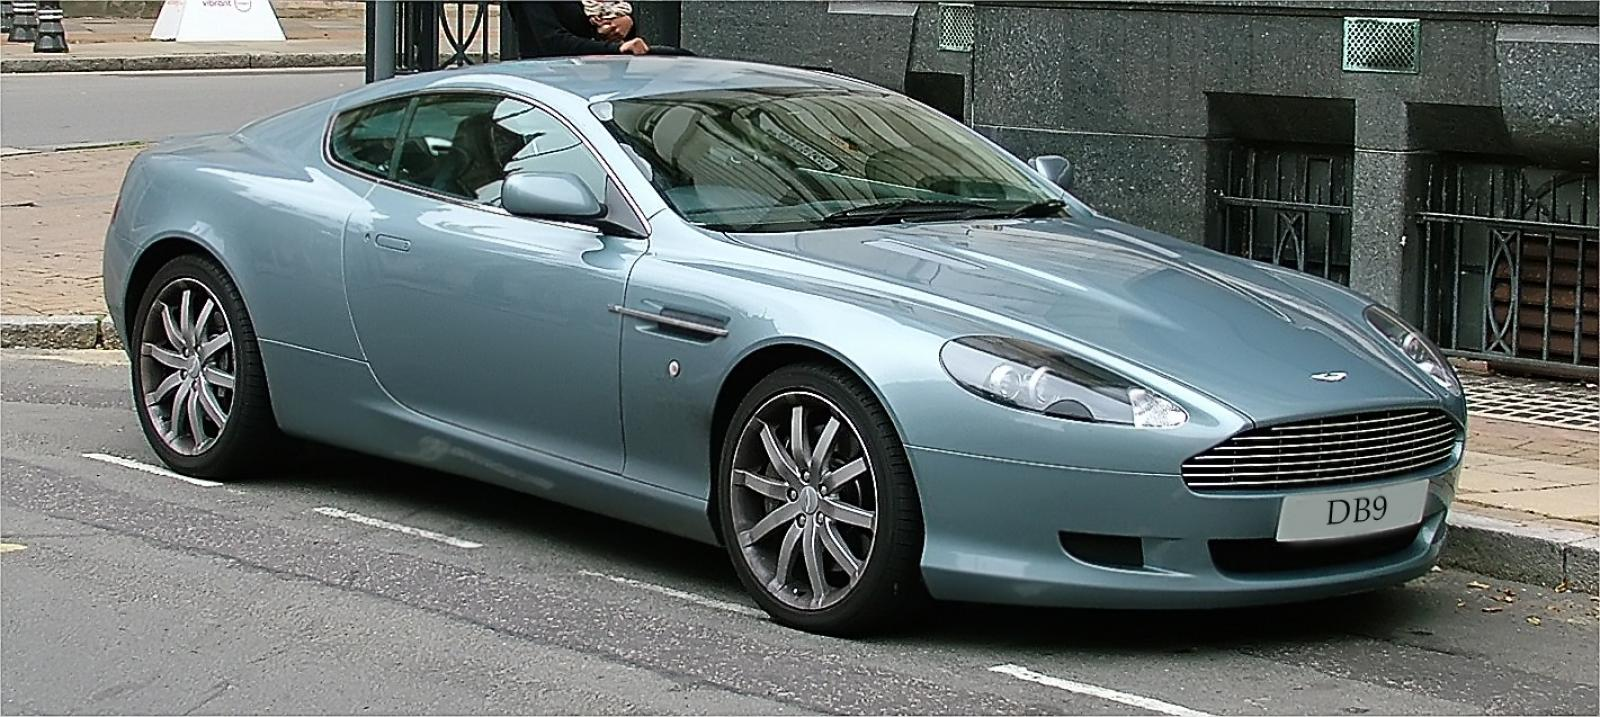 2009 aston martin db9 information and photos zombiedrive. Black Bedroom Furniture Sets. Home Design Ideas